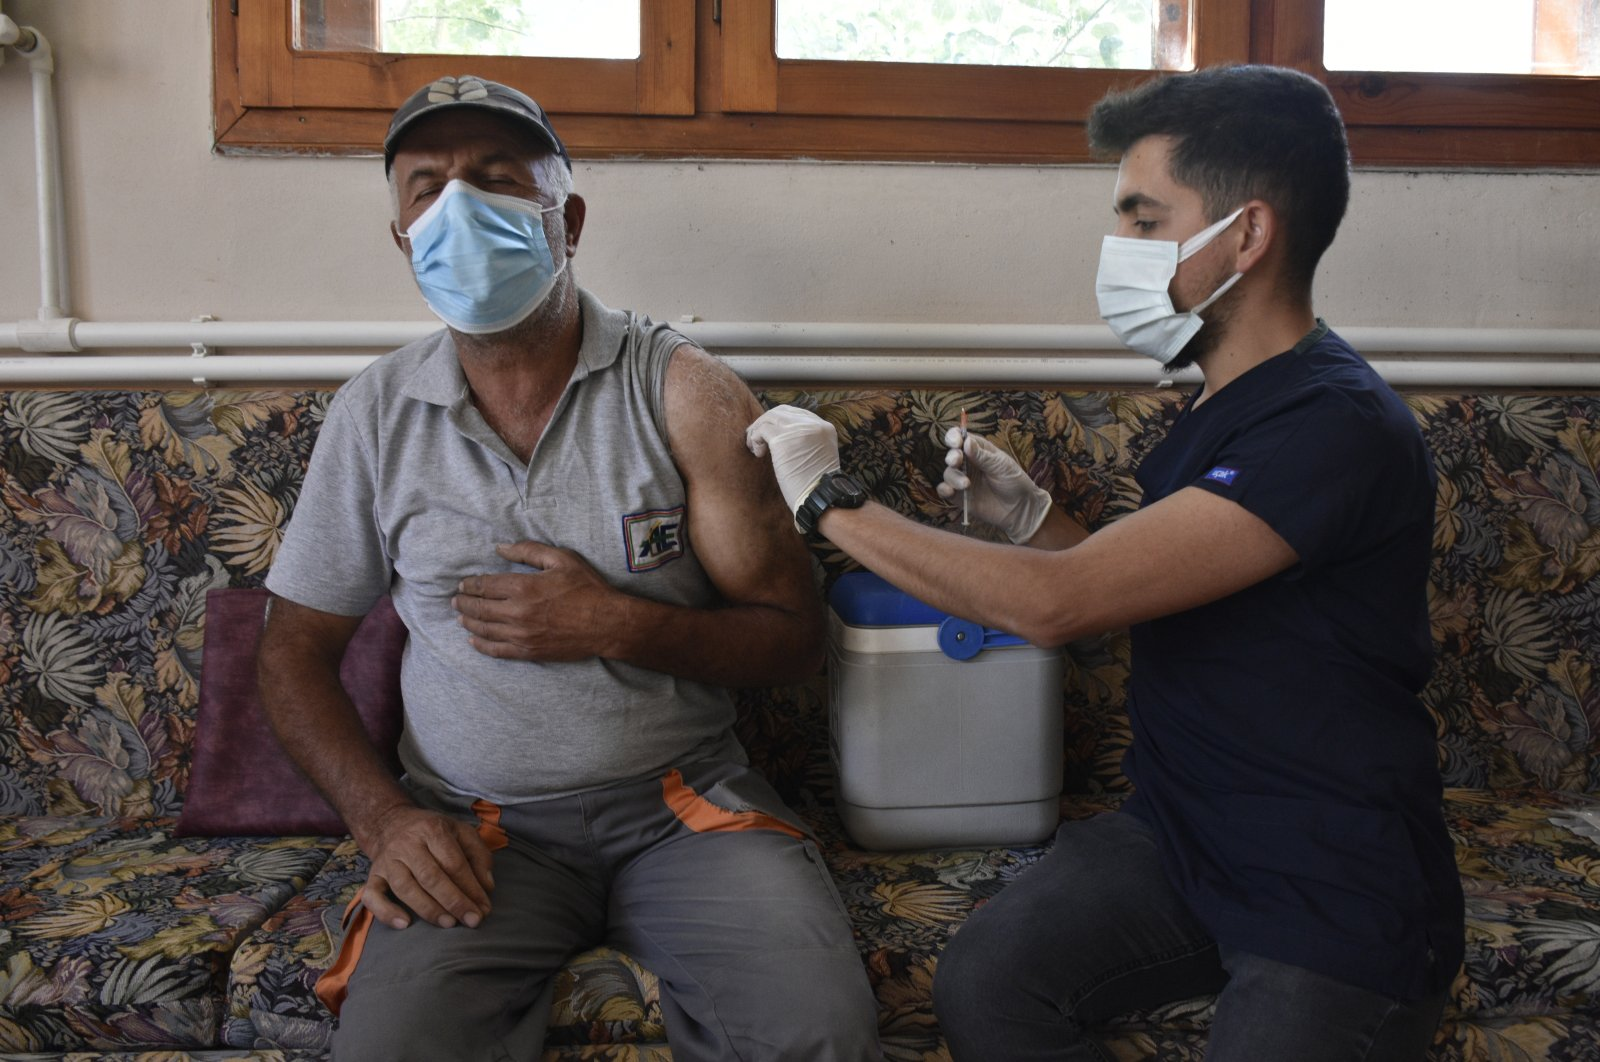 A man is vaccinated at home, in Bayburt, northeastern Turkey, Sept. 17, 2021. (AA Photo)